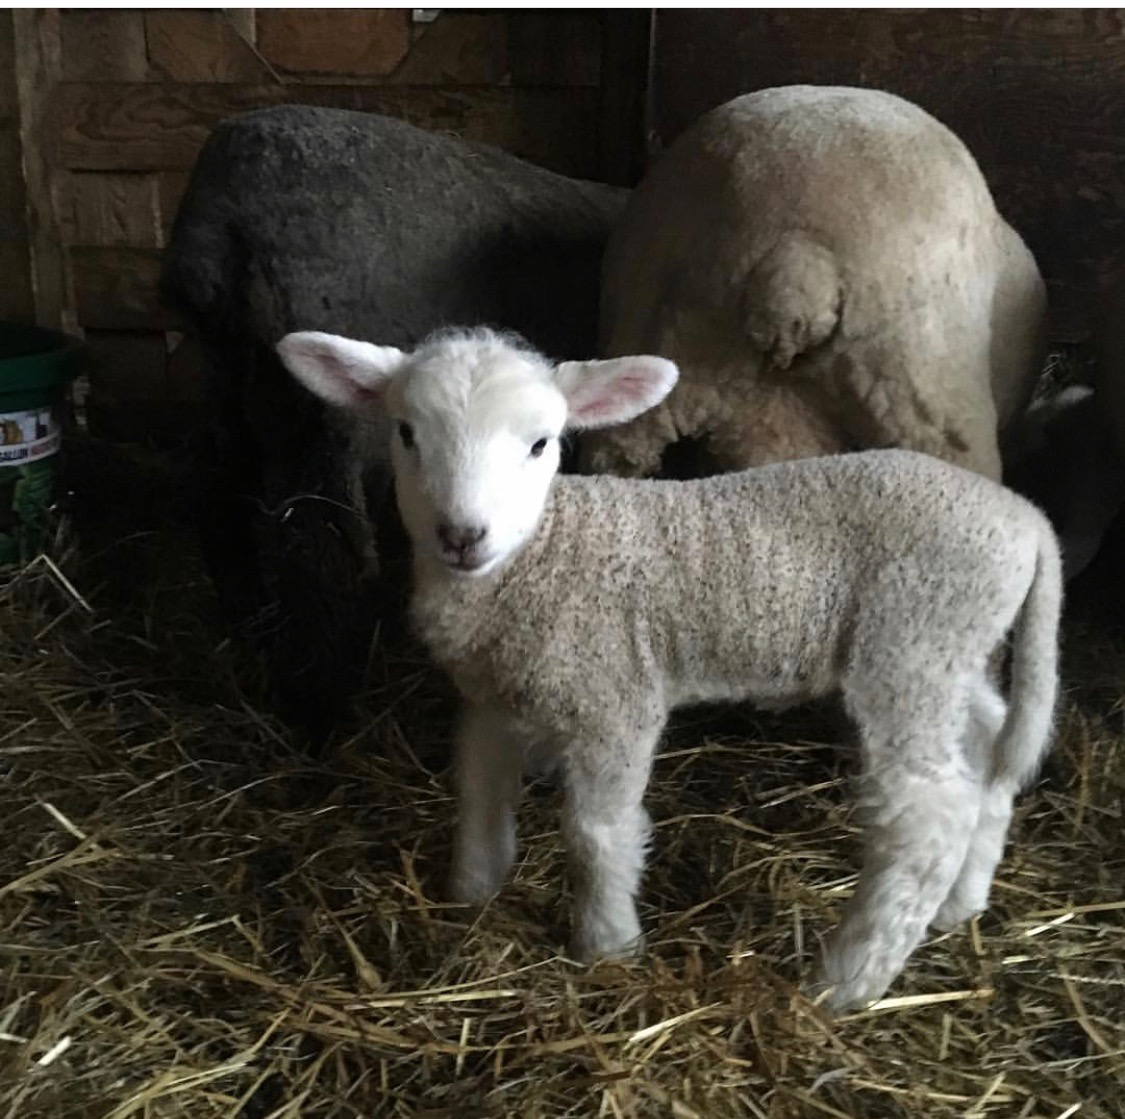 Lamb | Baby sheep | White lamb | New life | Barn animals | www.sandykayemoss.com